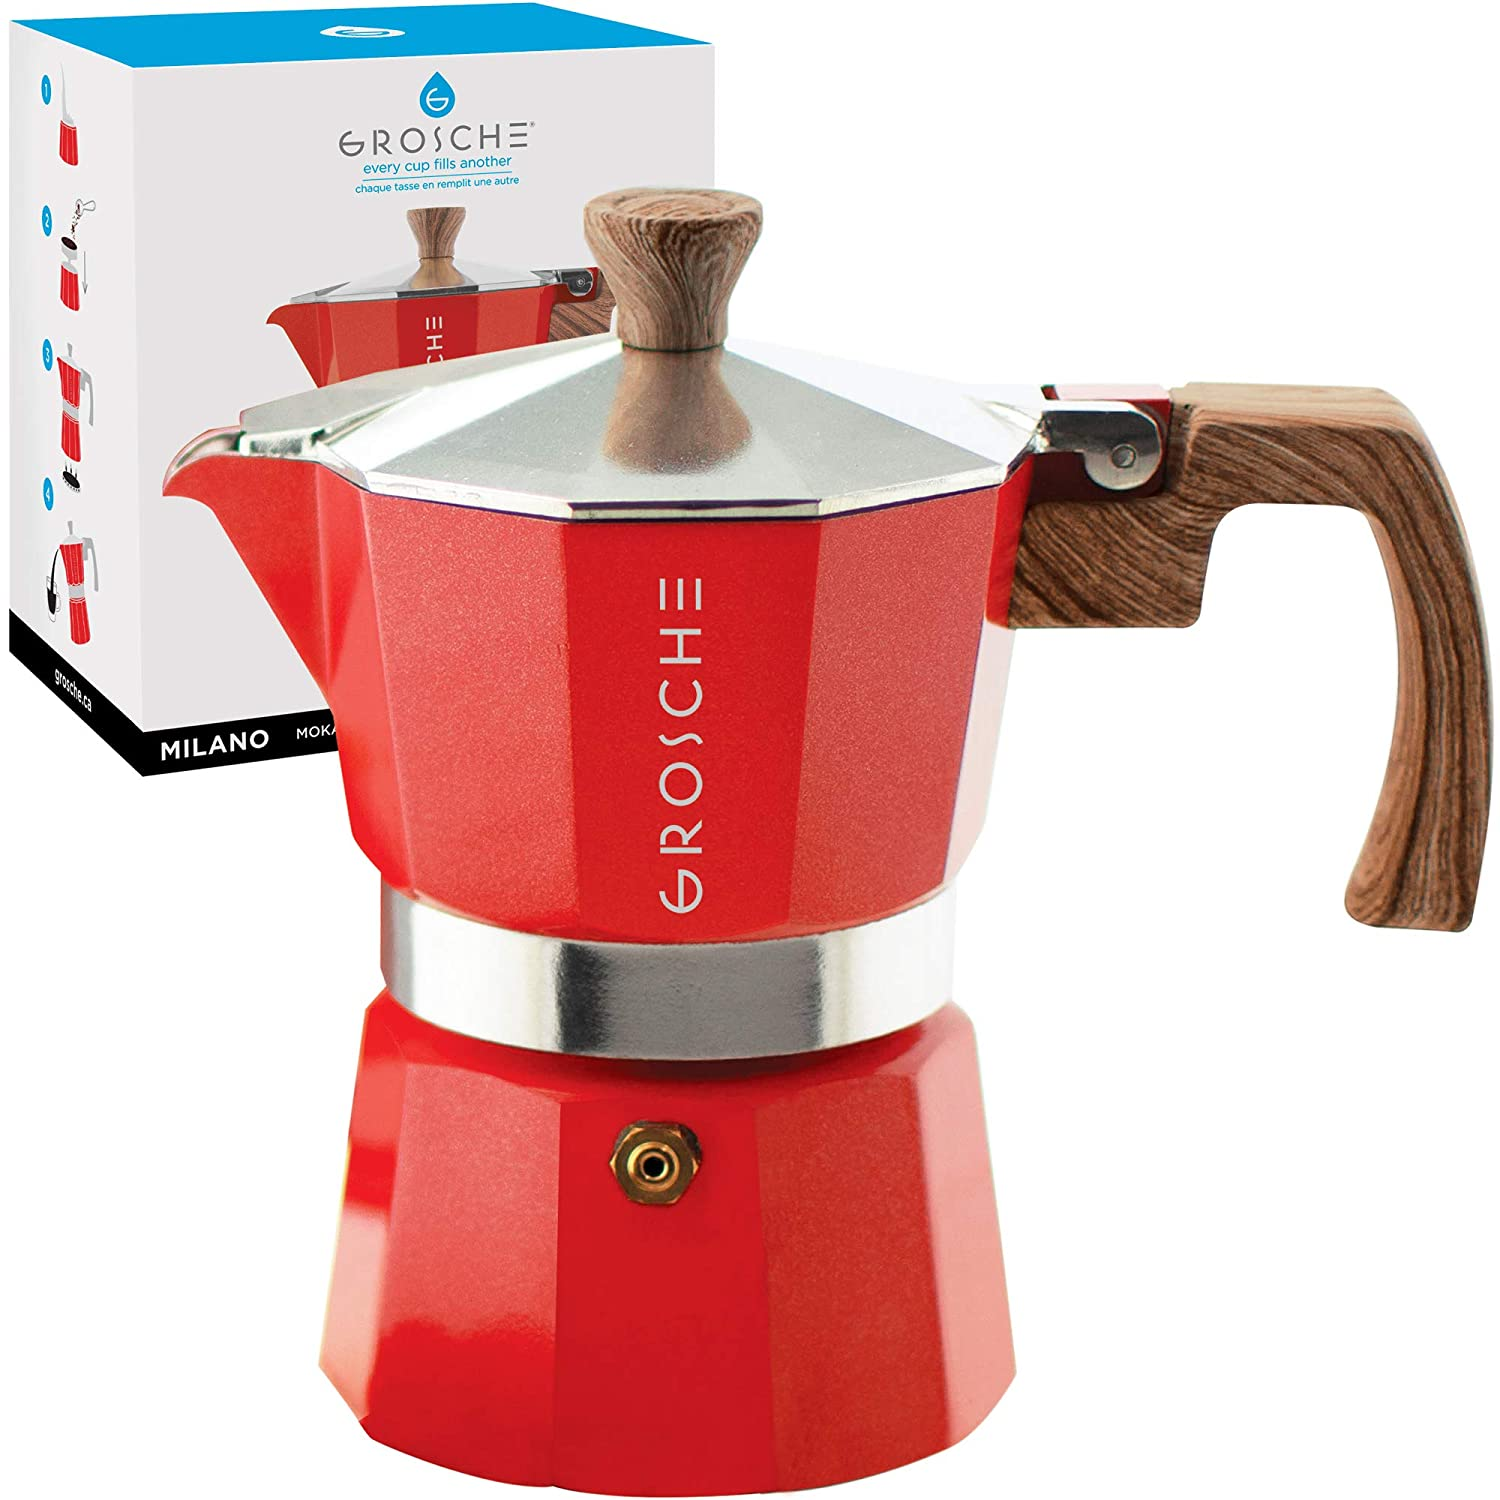 GROSCHE Milano Stovetop Espresso Maker Moka Pot 3 Cup - 5oz, Red - Cuban Coffee Maker Stove top coffee maker Moka Italian espresso greca coffee maker brewer percolator